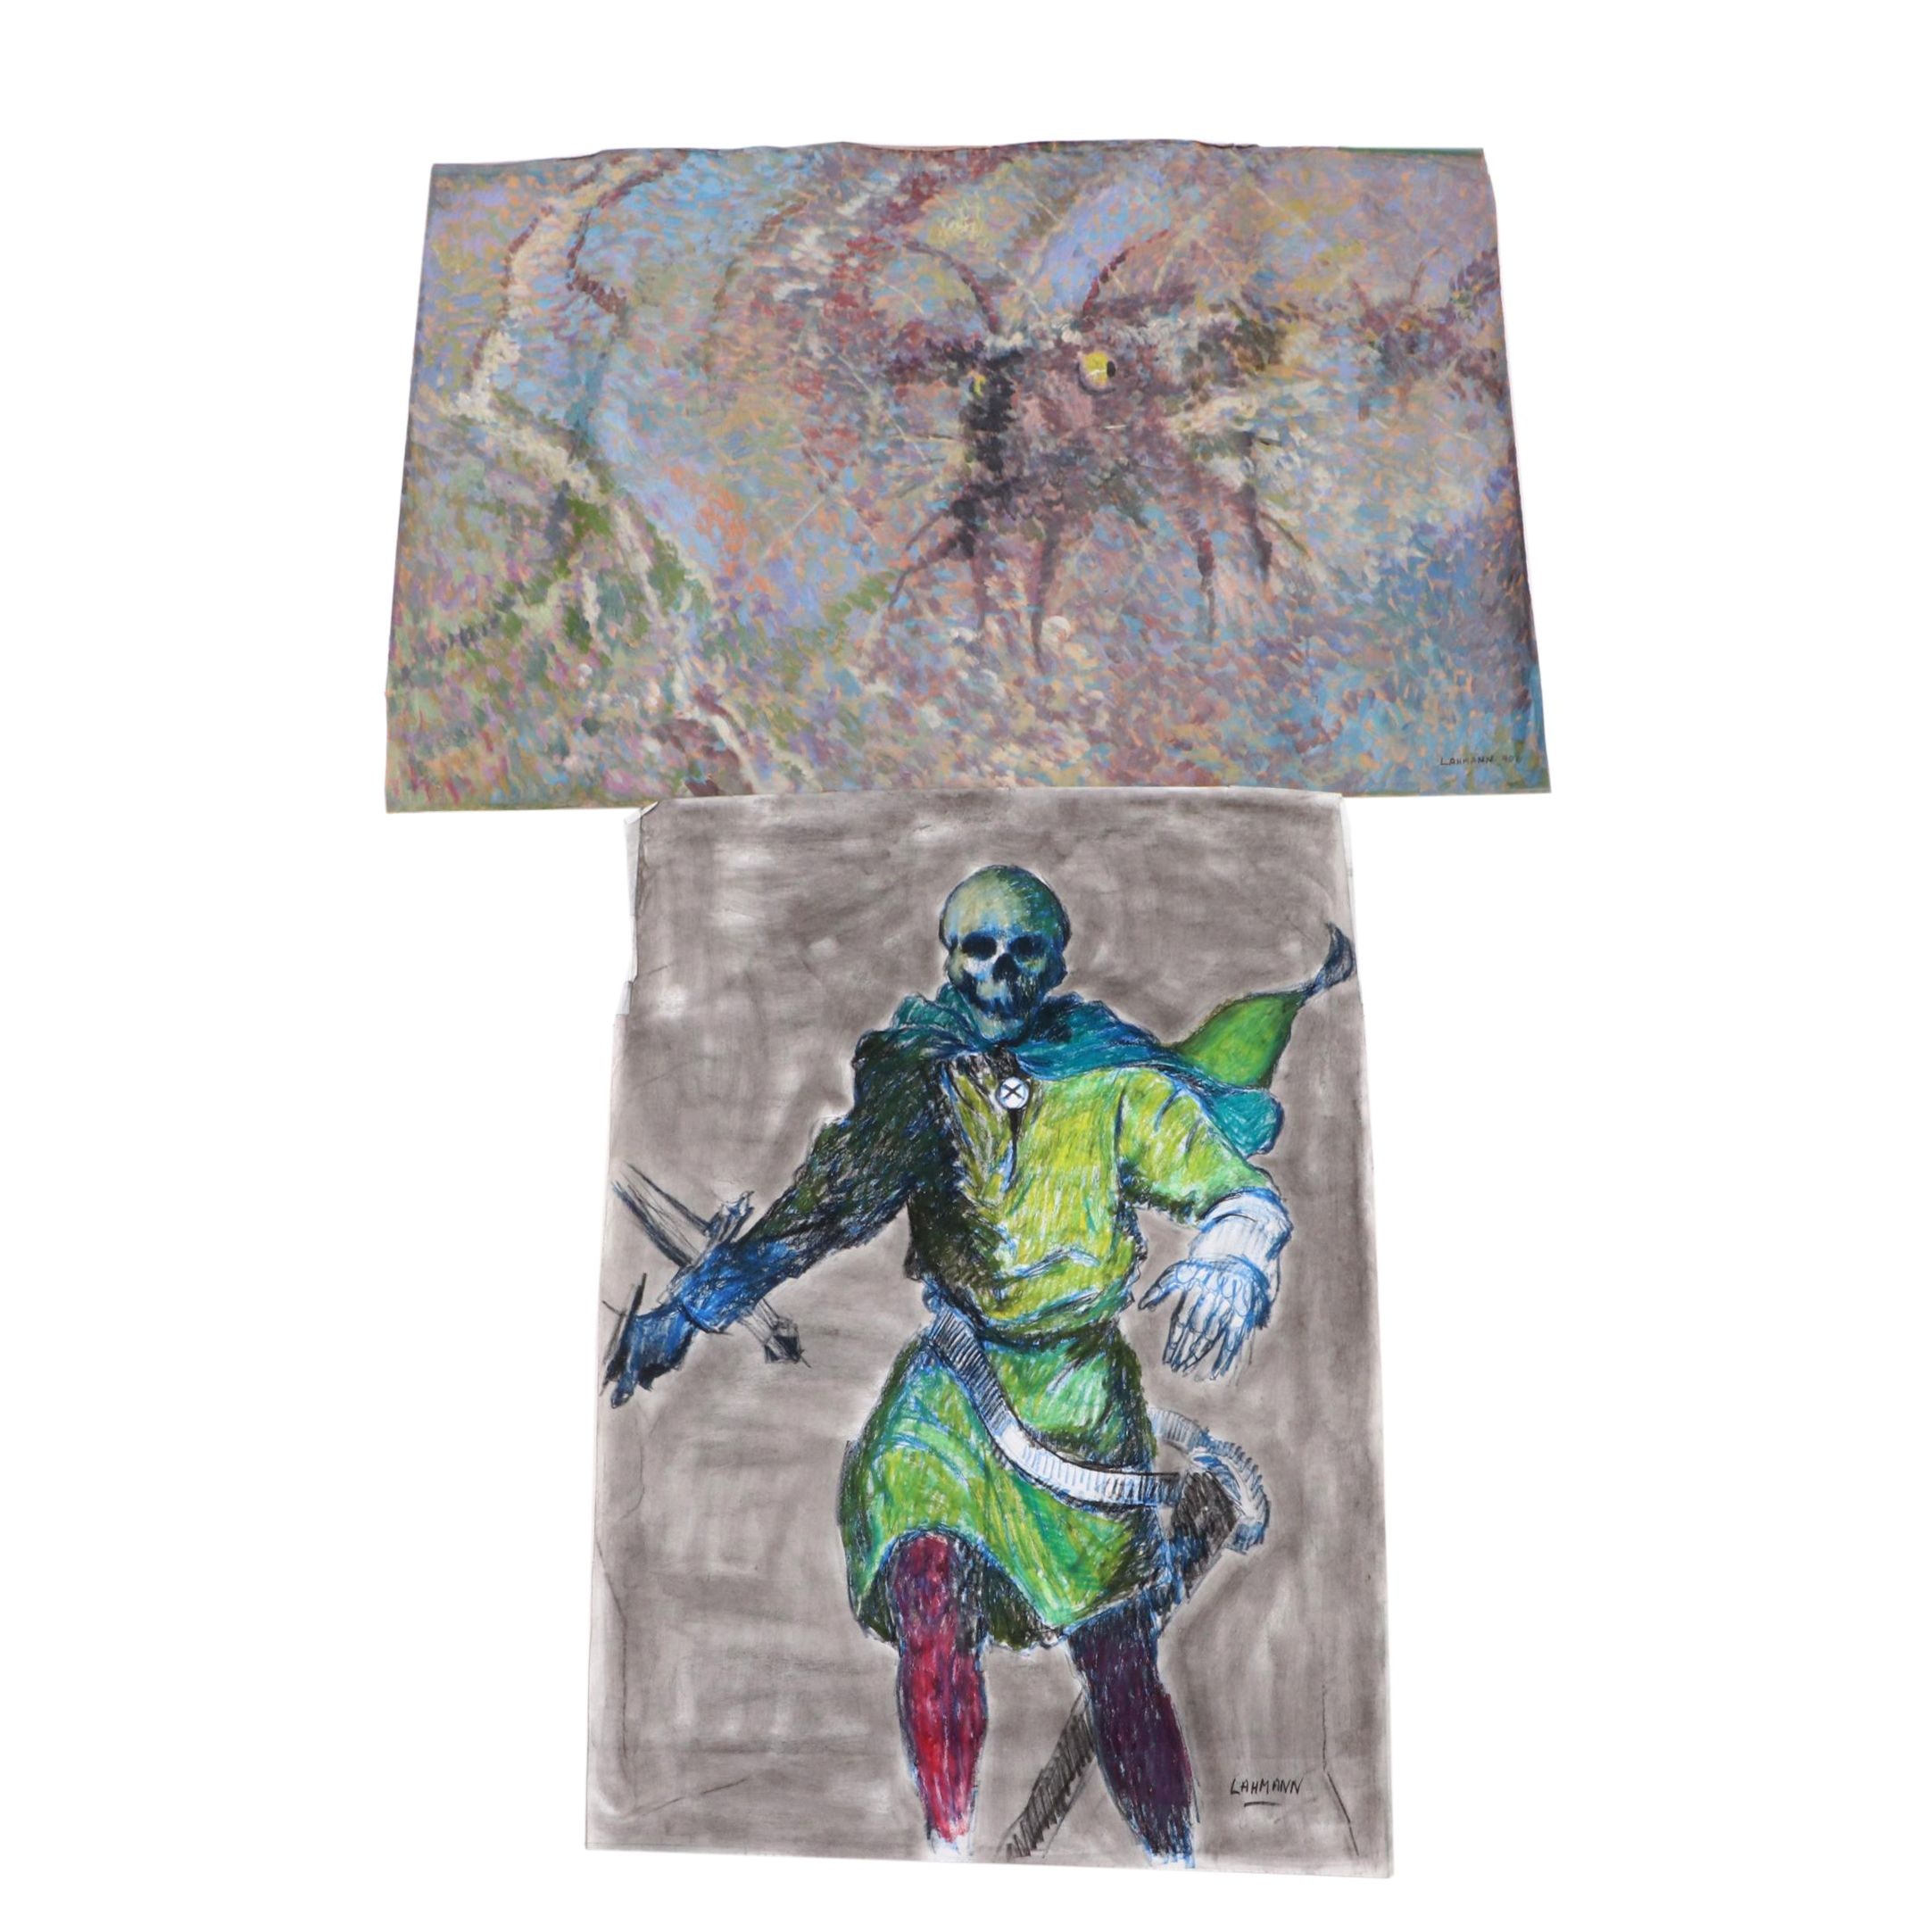 Robert Lahmann Drawing of Grim Reaper and Abstract Painting of Creature